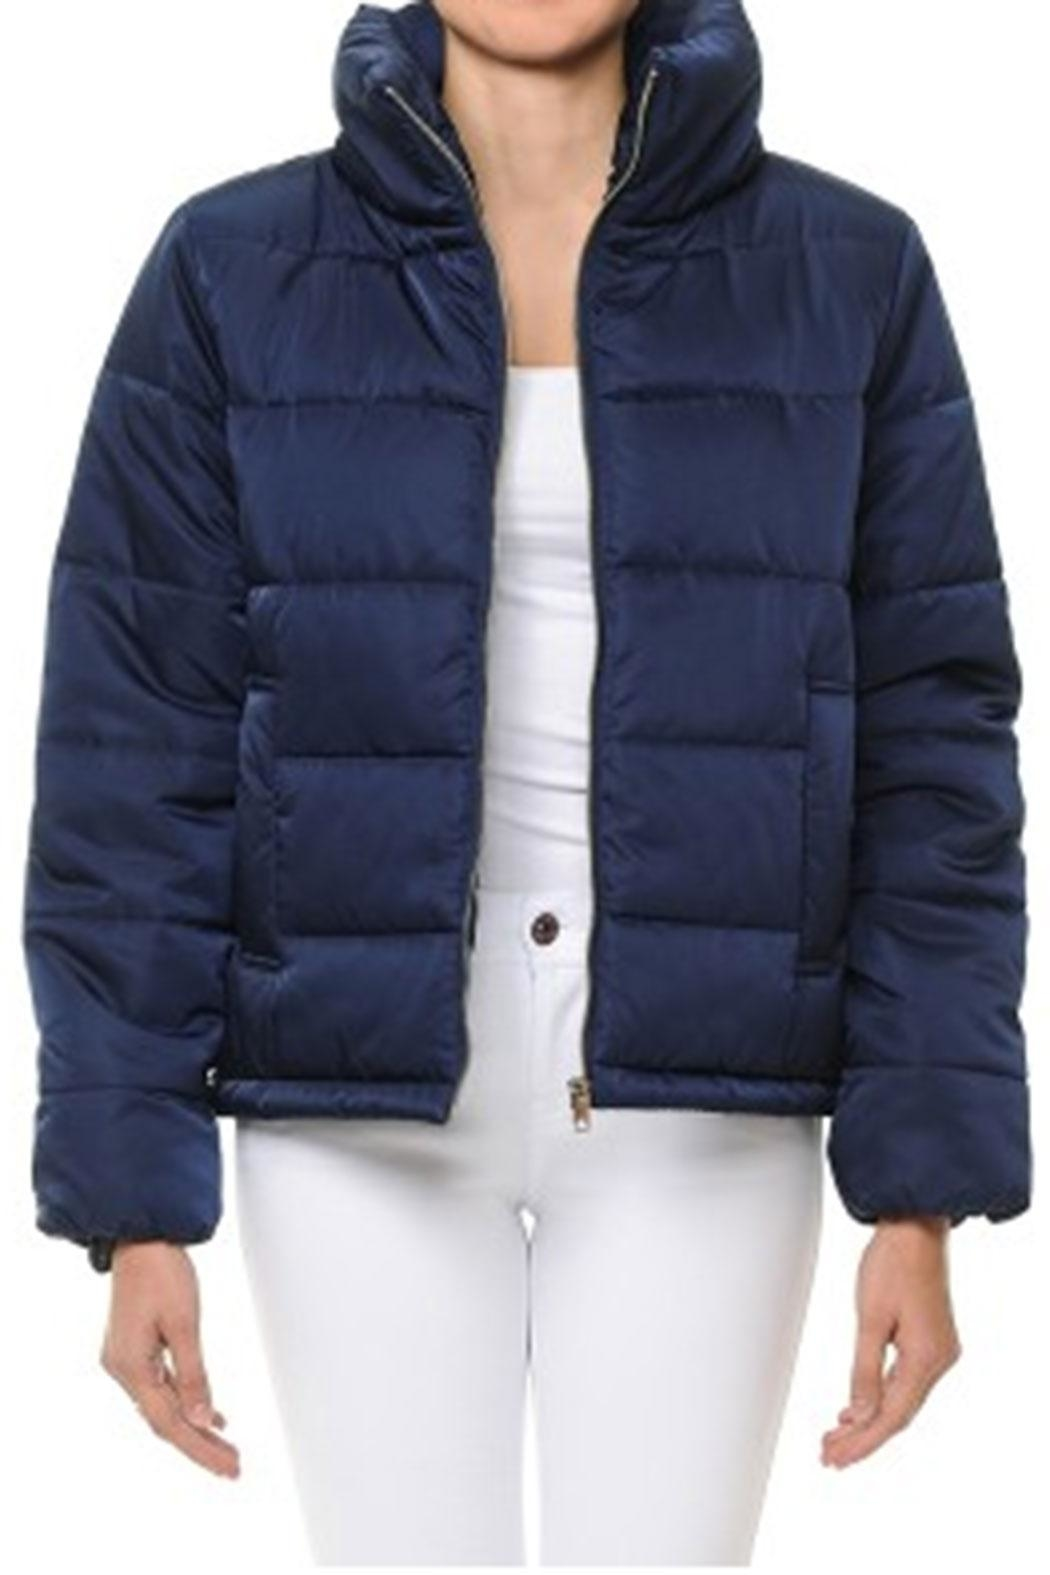 ambiance apparel Quilted Puffer Jacket - Main Image